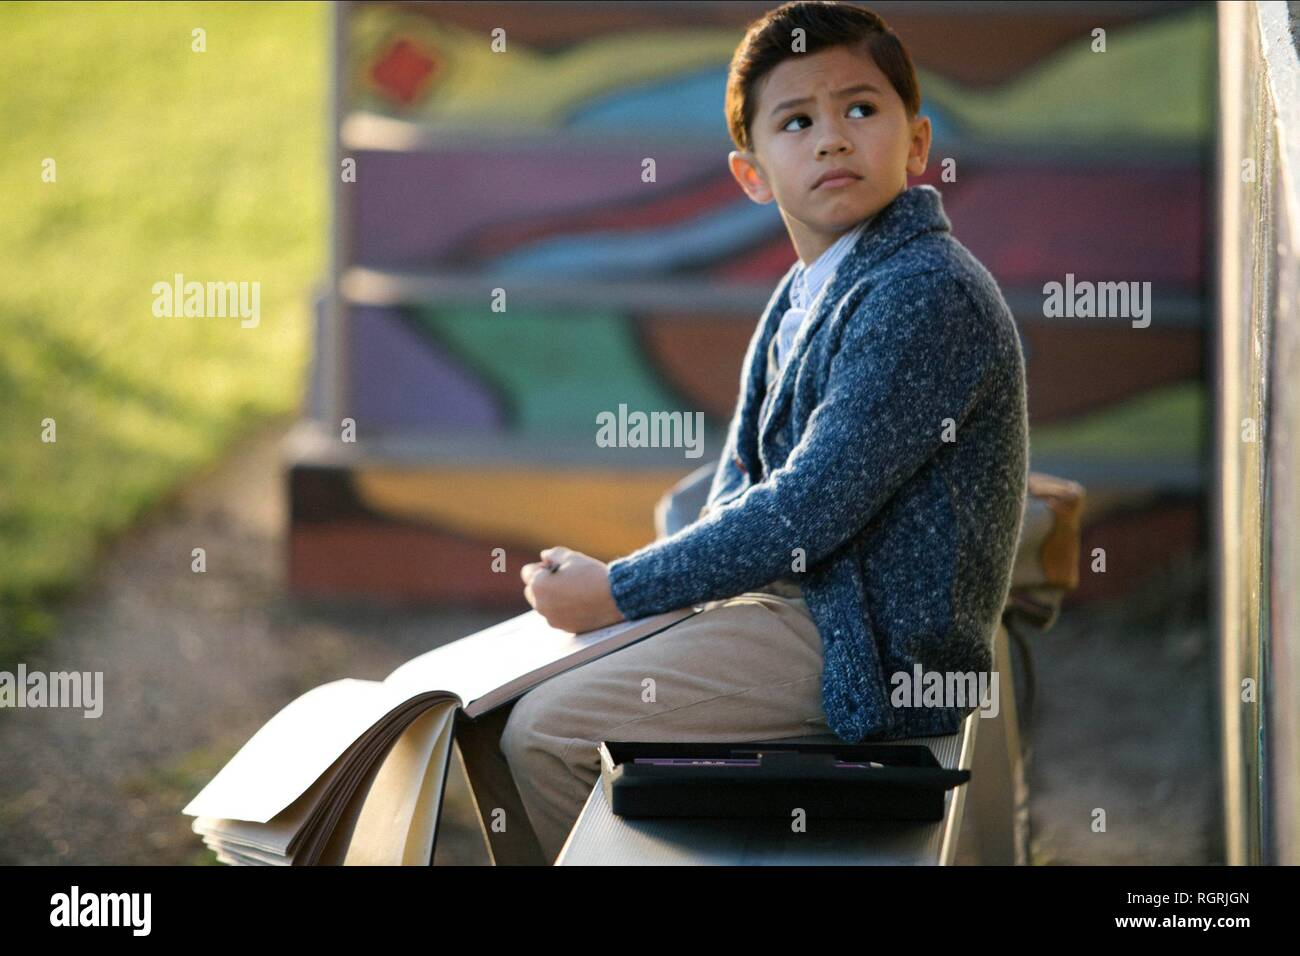 DERIC MCCABE A WRINKLE IN TIME (2018) - Stock Image